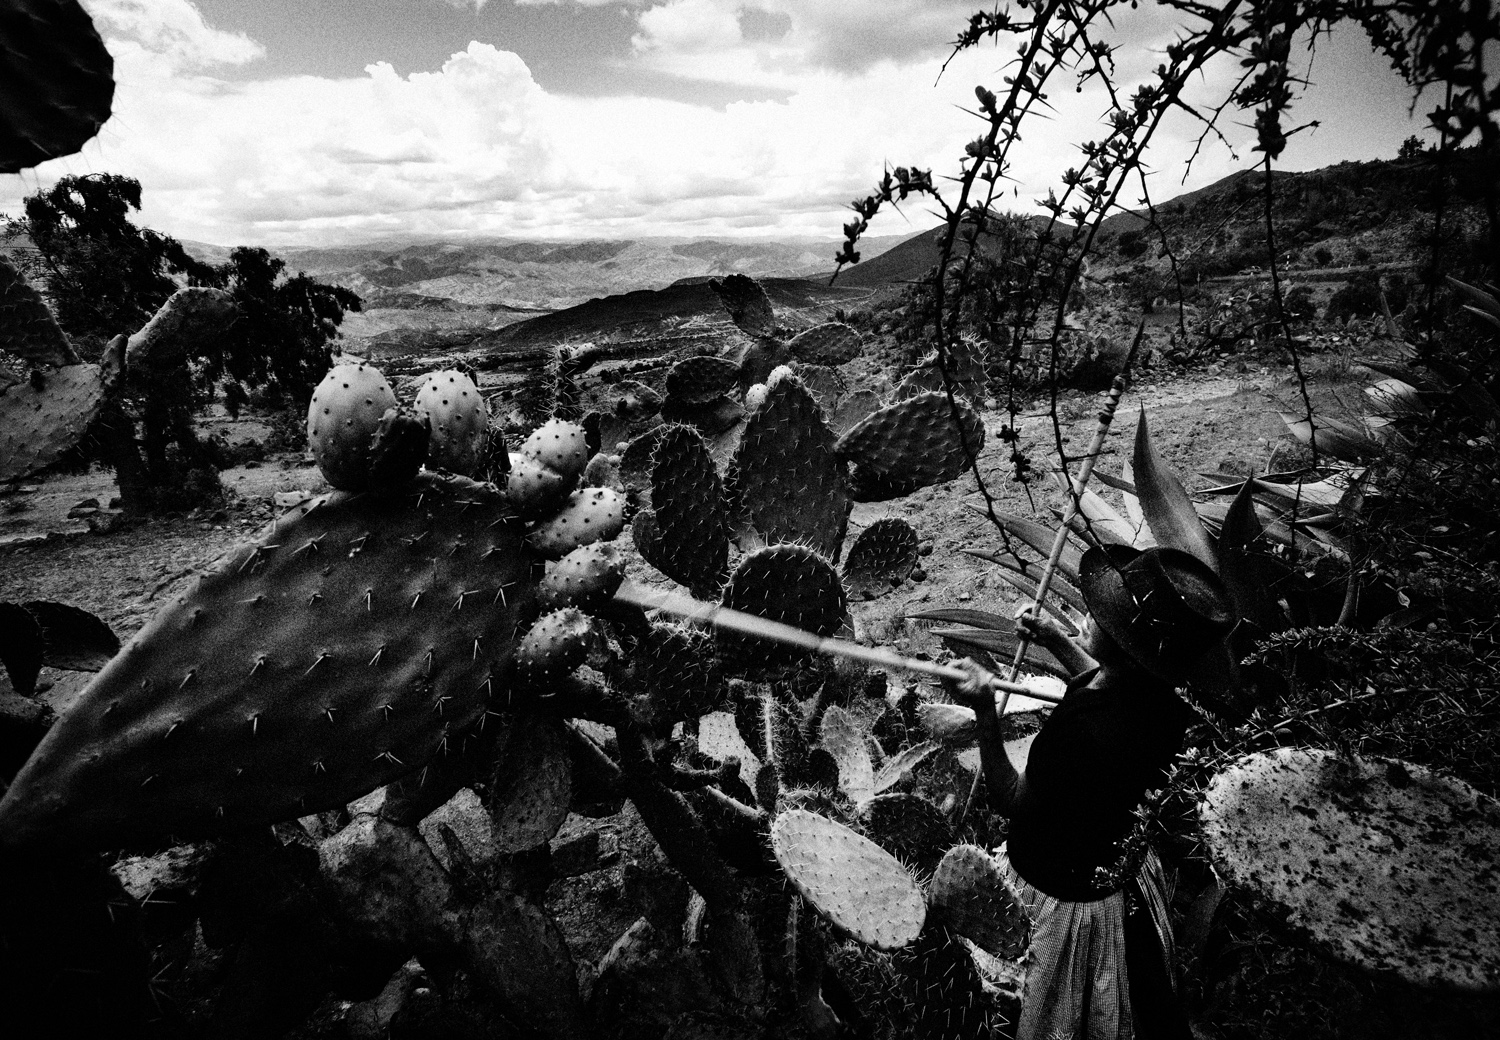 Teofila Huaman Oré works to pick prickly pears from cactus in the mountains above Ayacucho. The fruit, which are sold in towns throughout the Andes, are a staple crop for many too poor to own their own farm.